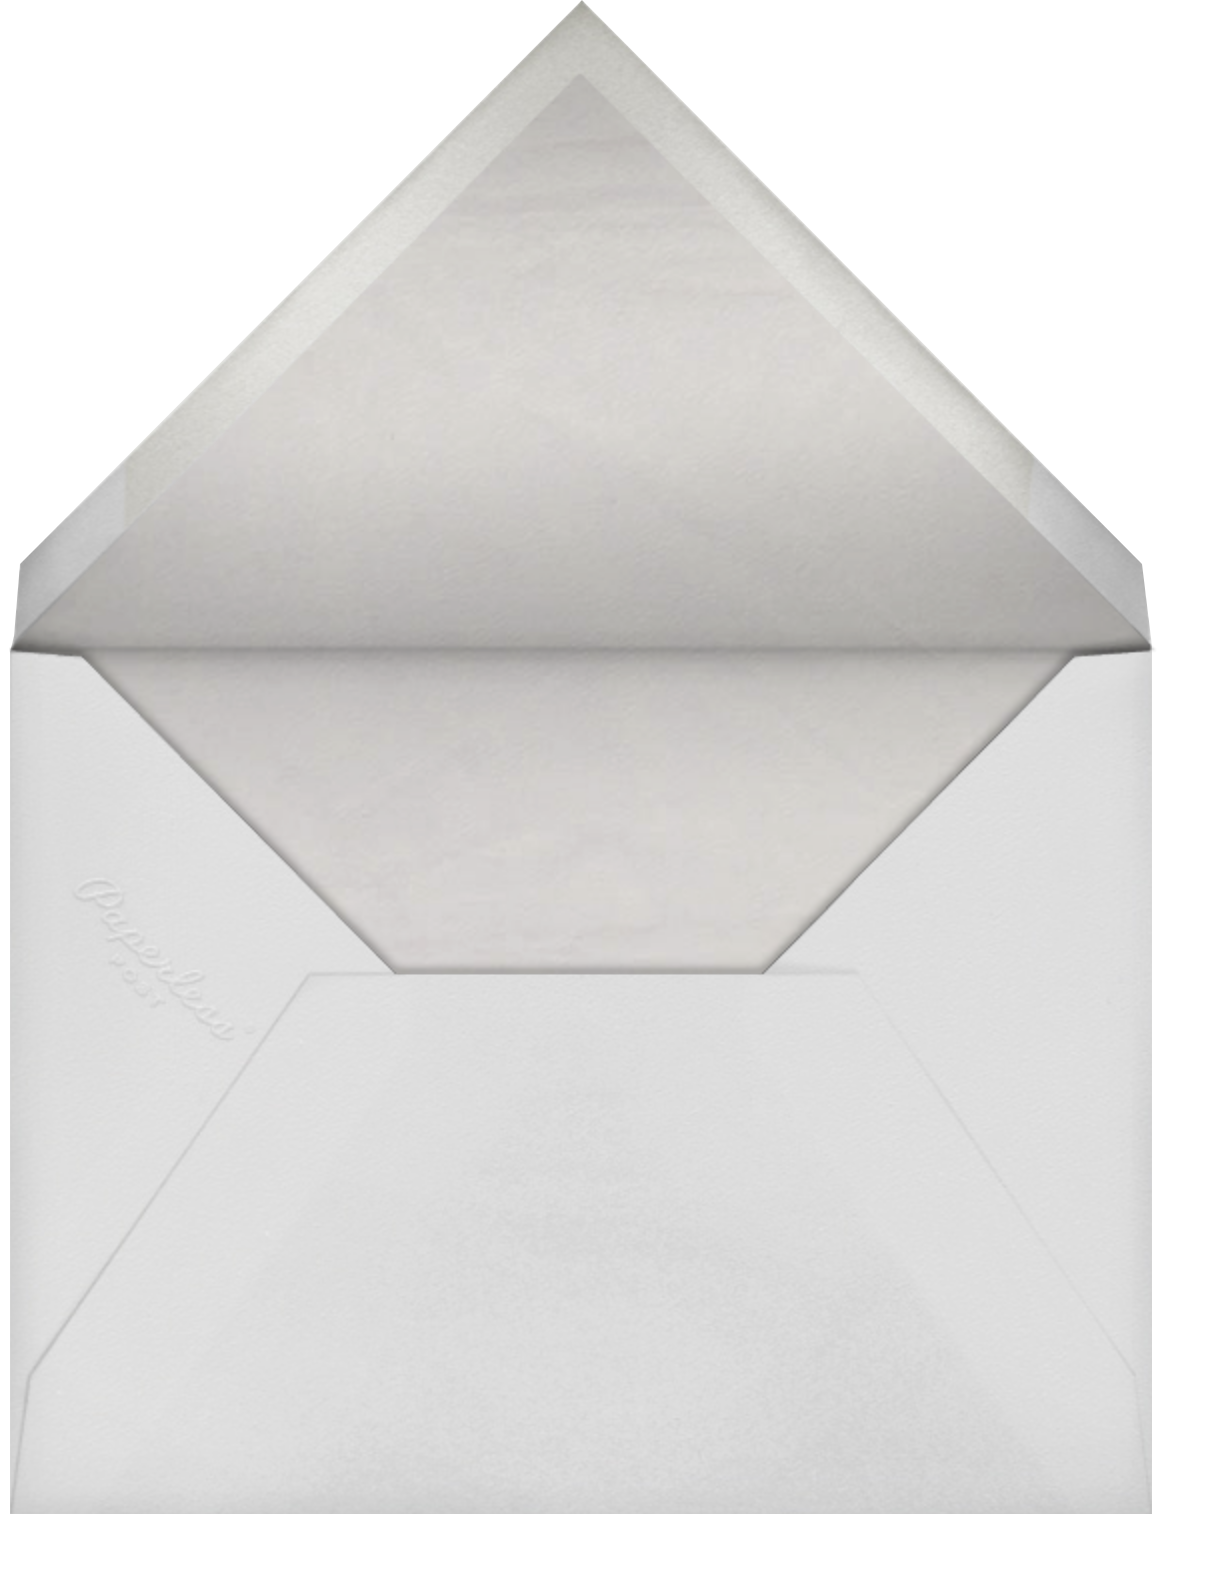 Damask - Greige with Frost (Border) - Paperless Post - Envelope